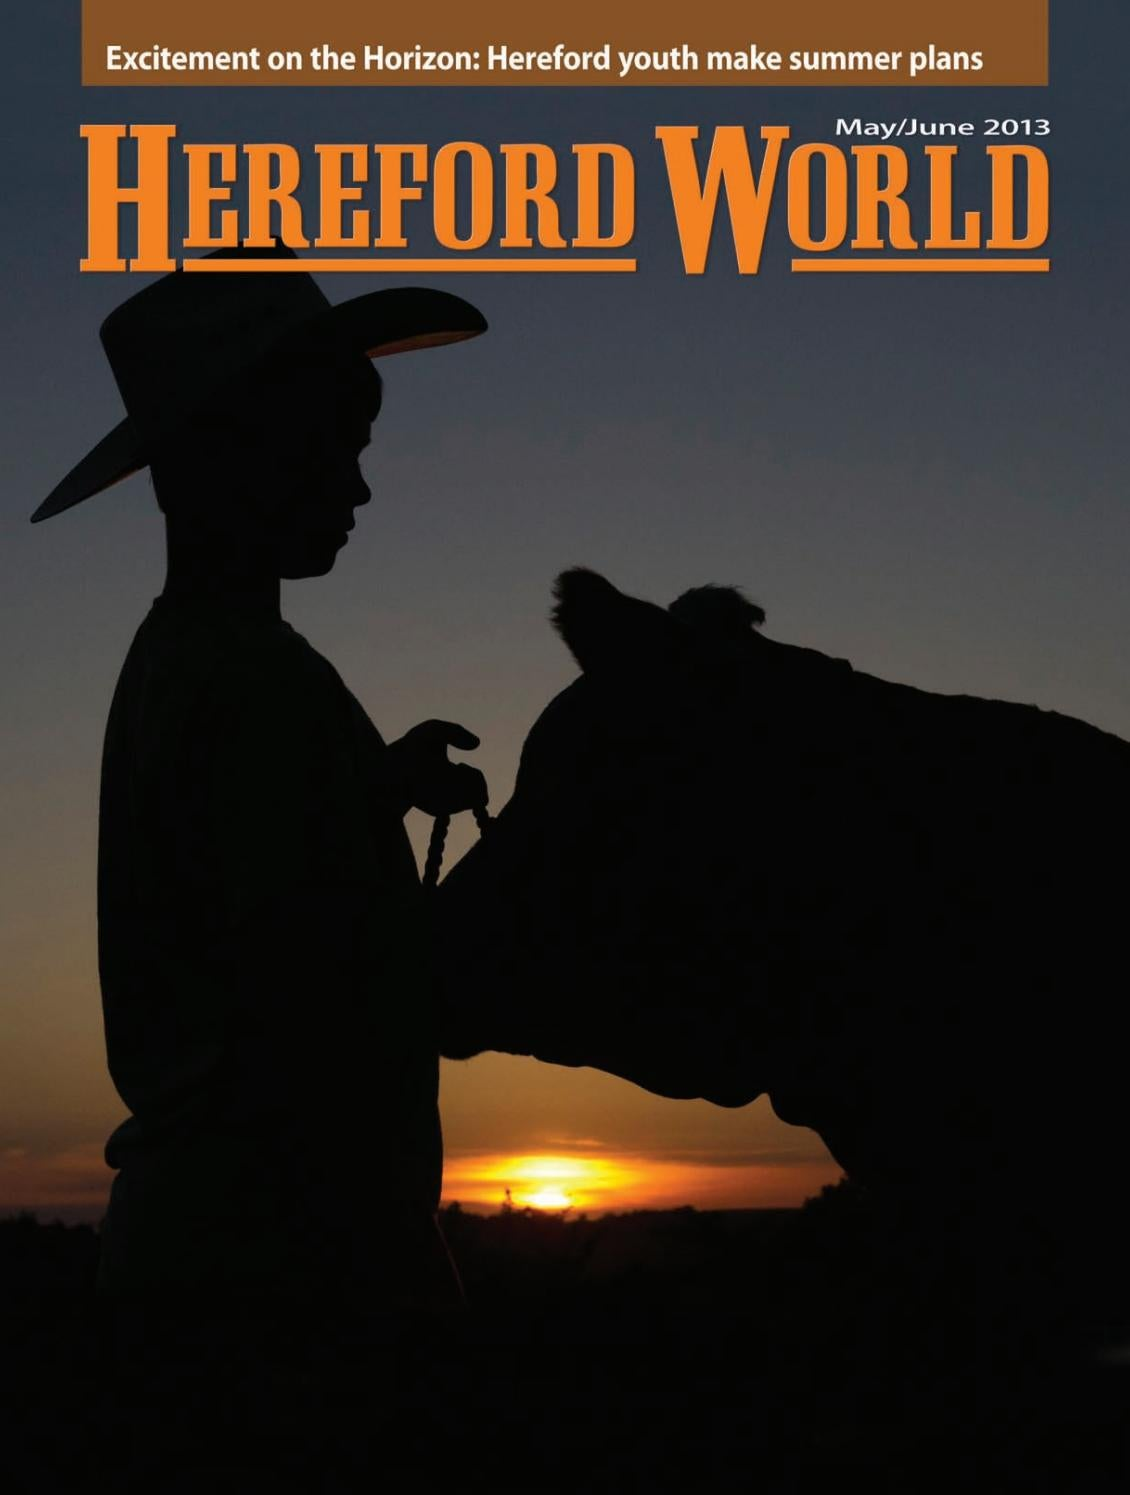 Mayjune 2013 hereford world by american hereford association and mayjune 2013 hereford world by american hereford association and hereford world issuu kristyandbryce Choice Image